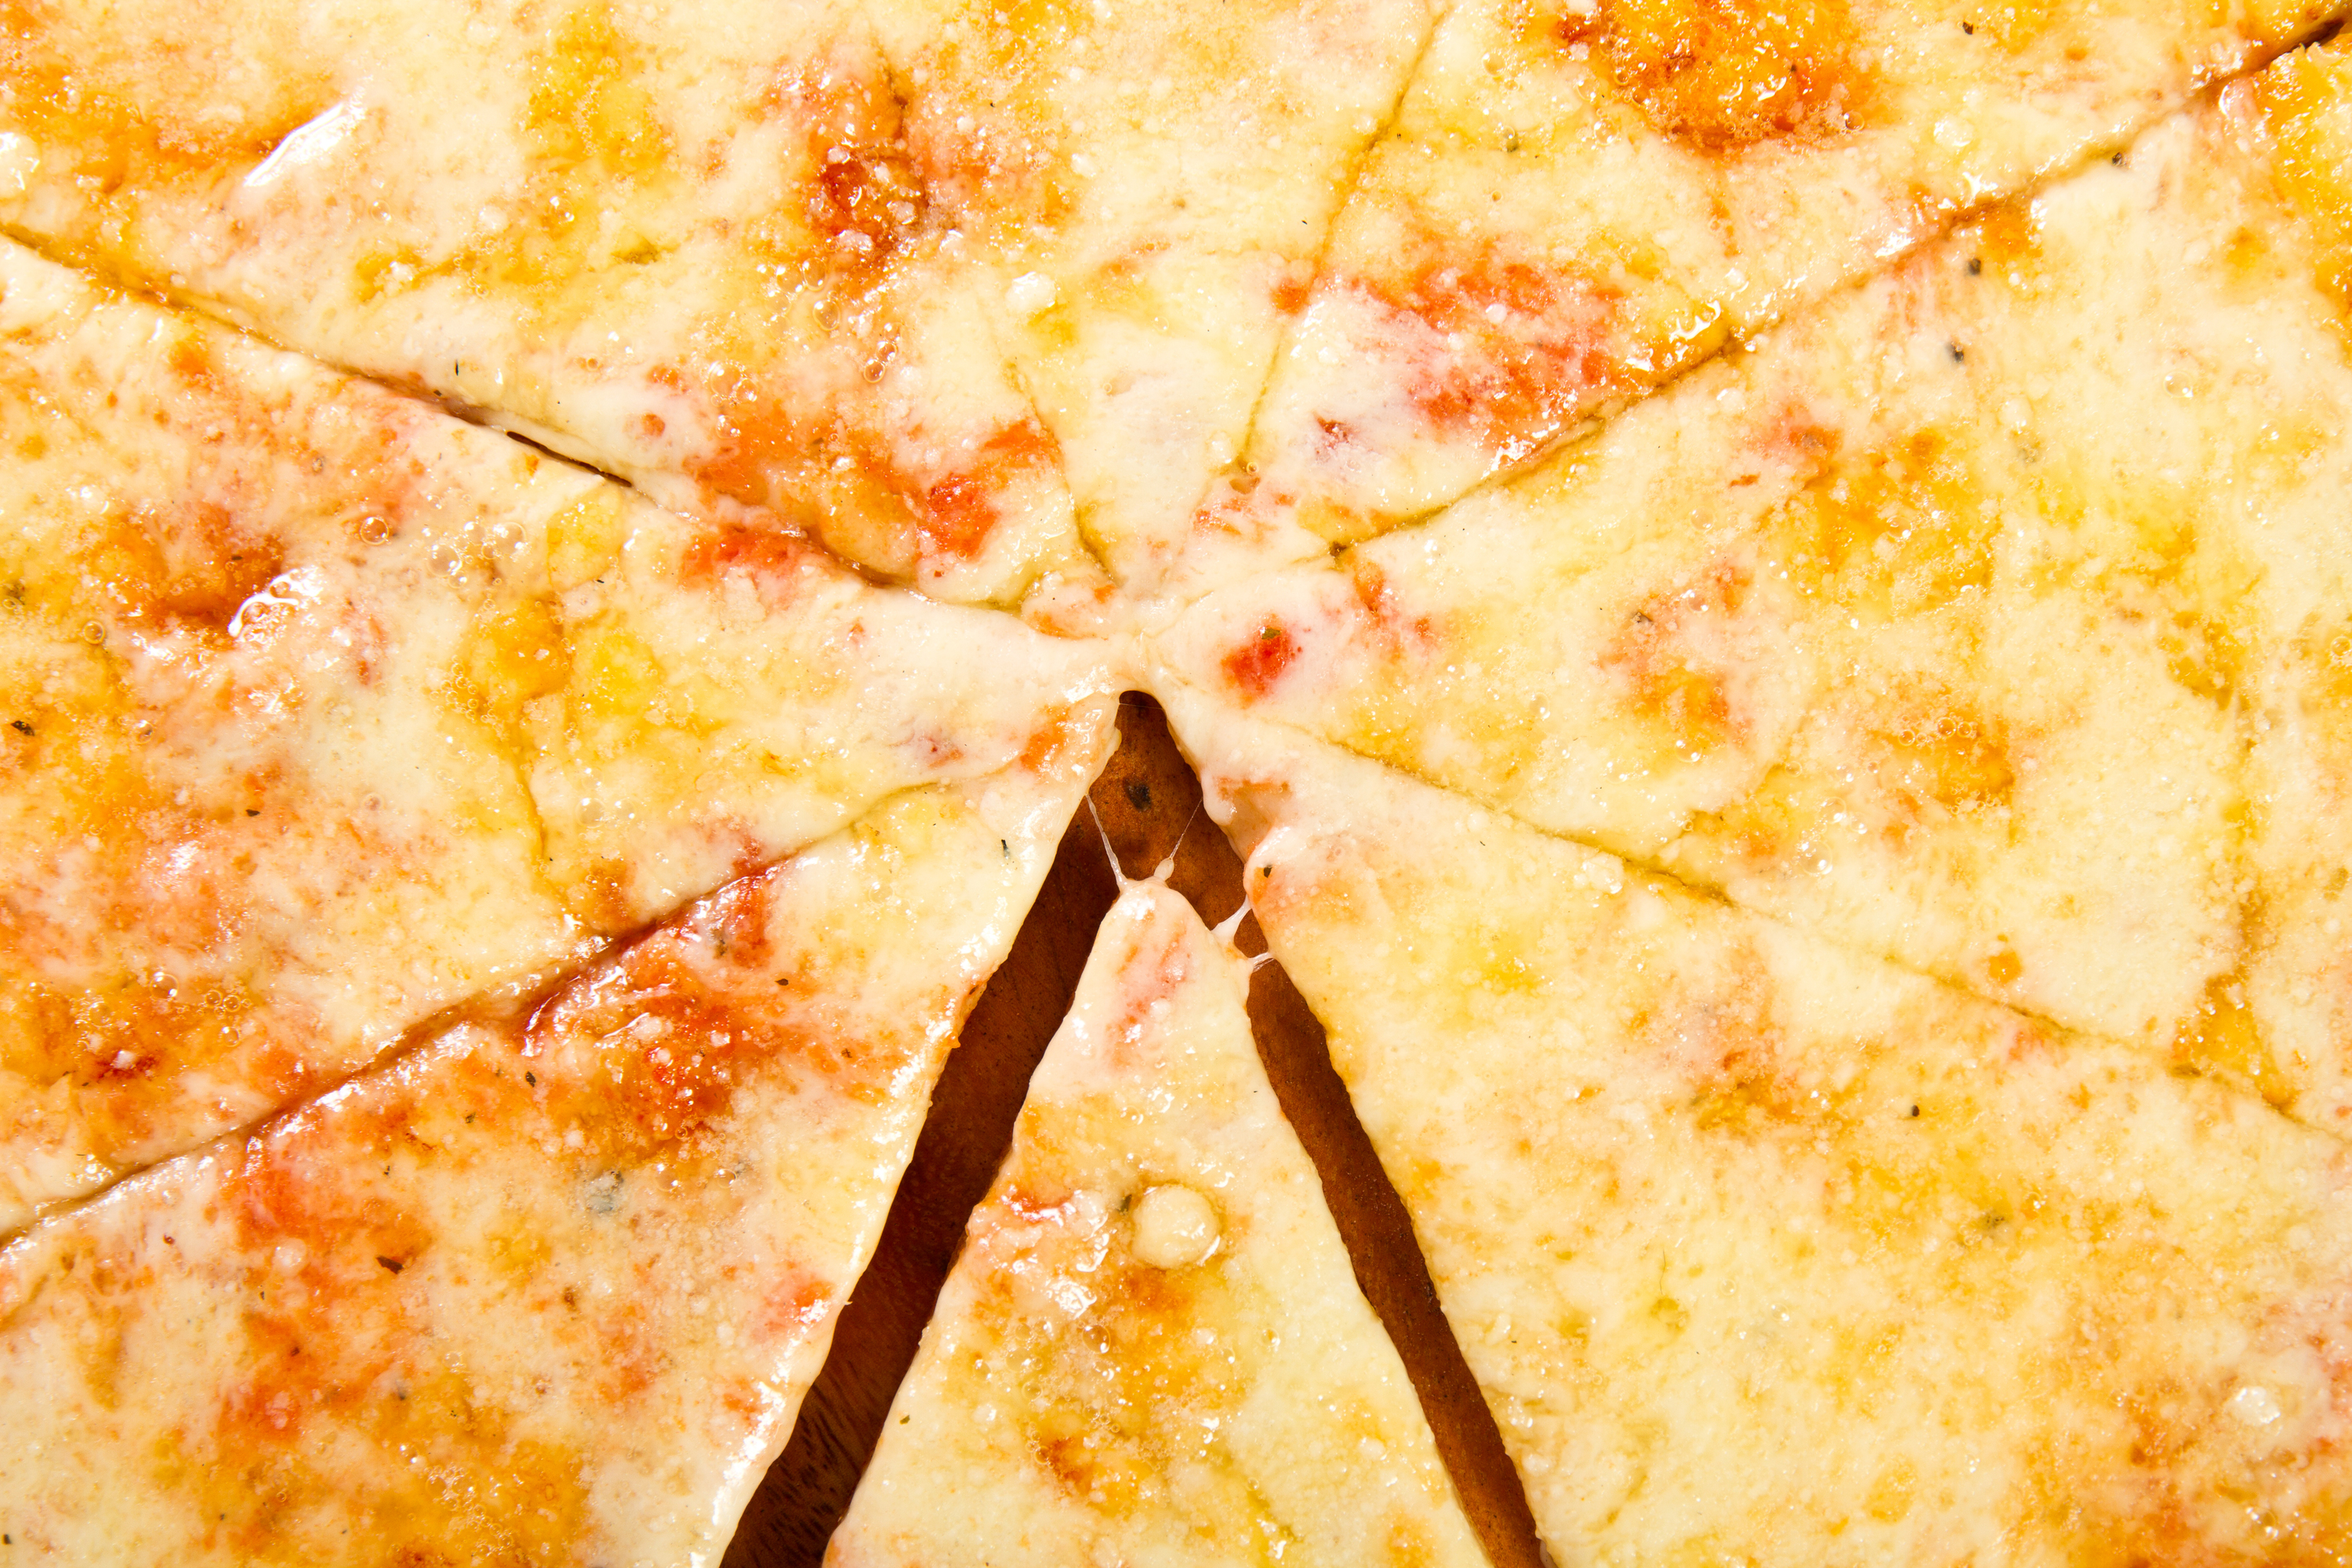 The 5 best dollar slices in New York